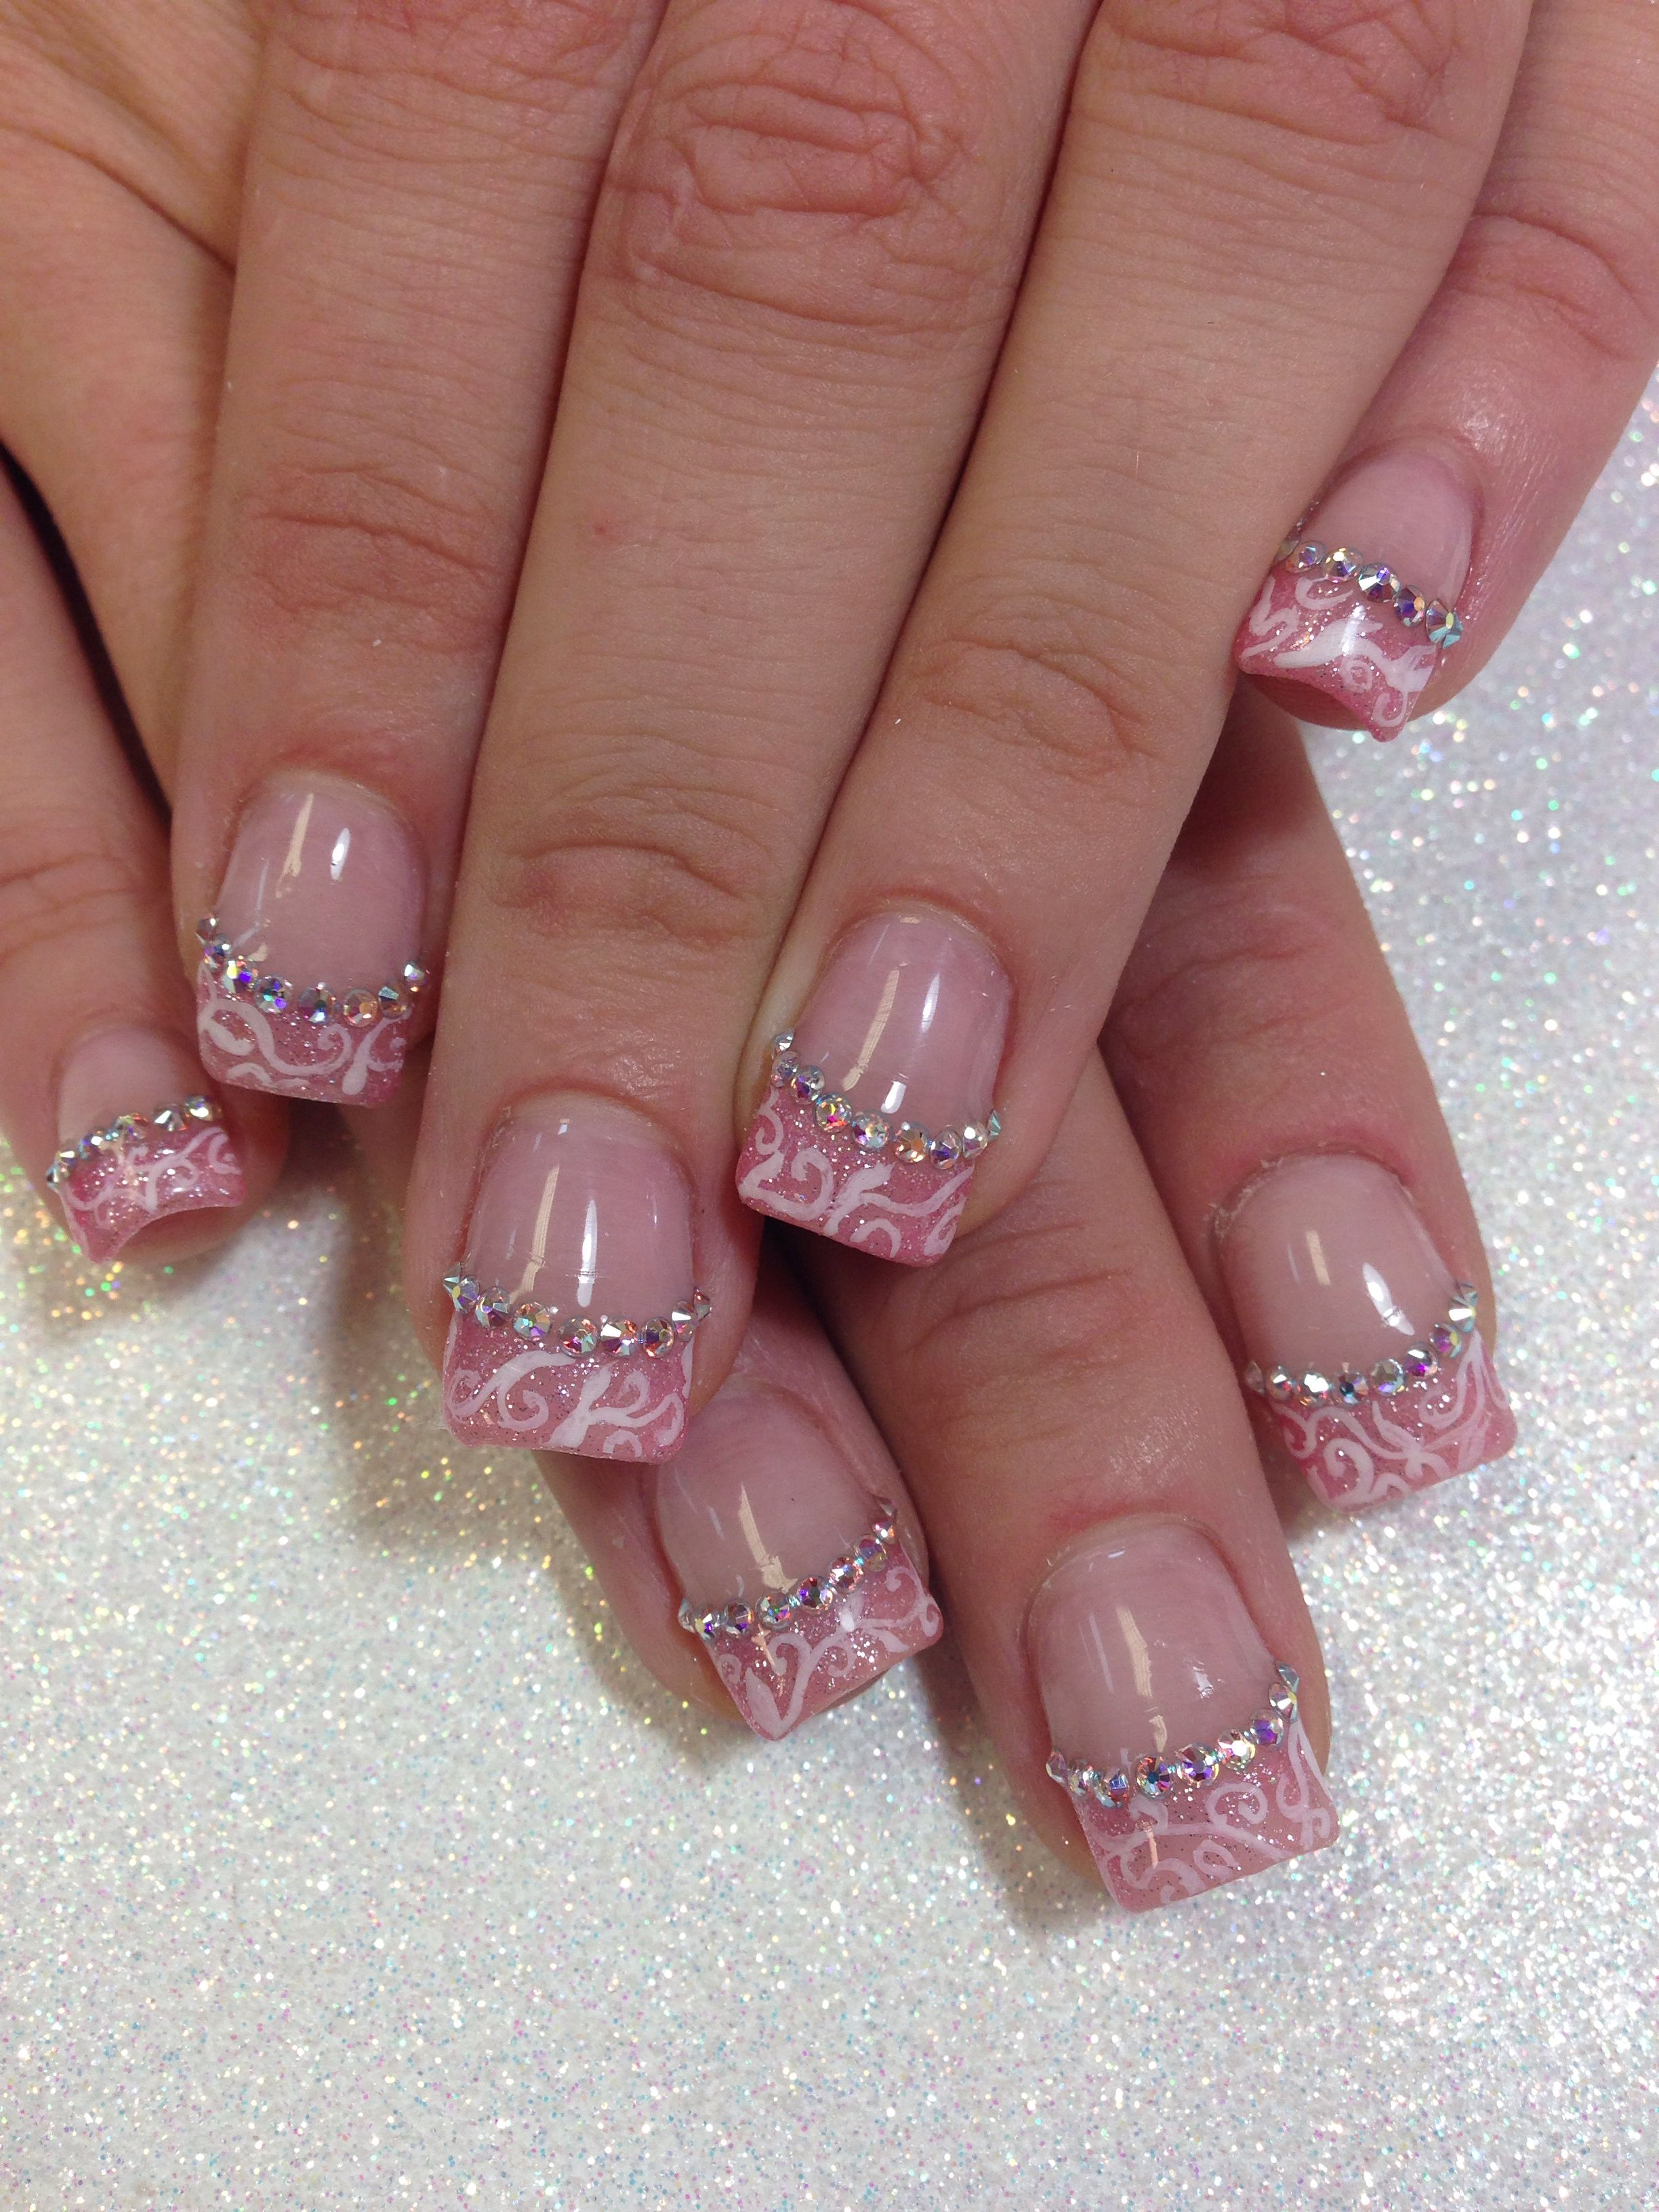 Amazing gel manicure, sparkly pink French... Hand painted white ...